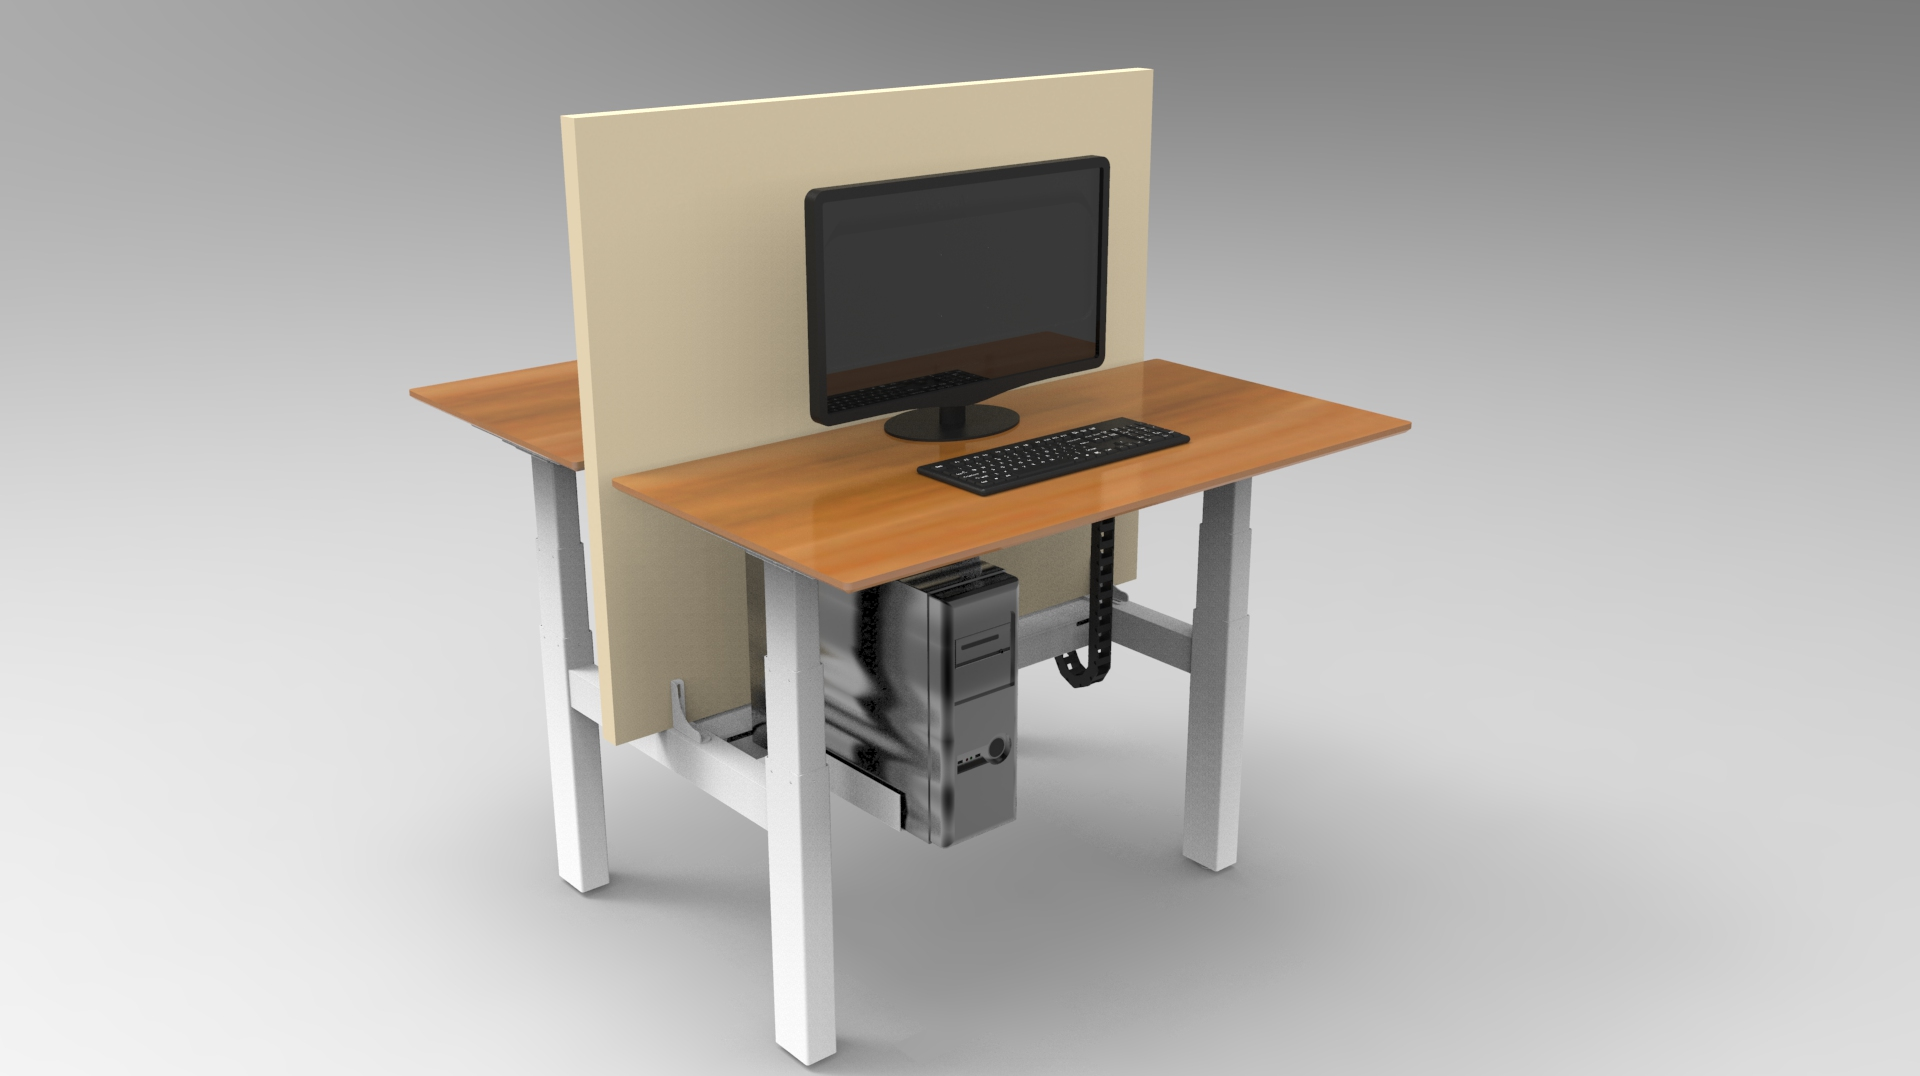 height adjustable desk back to back work station by electric lifting up